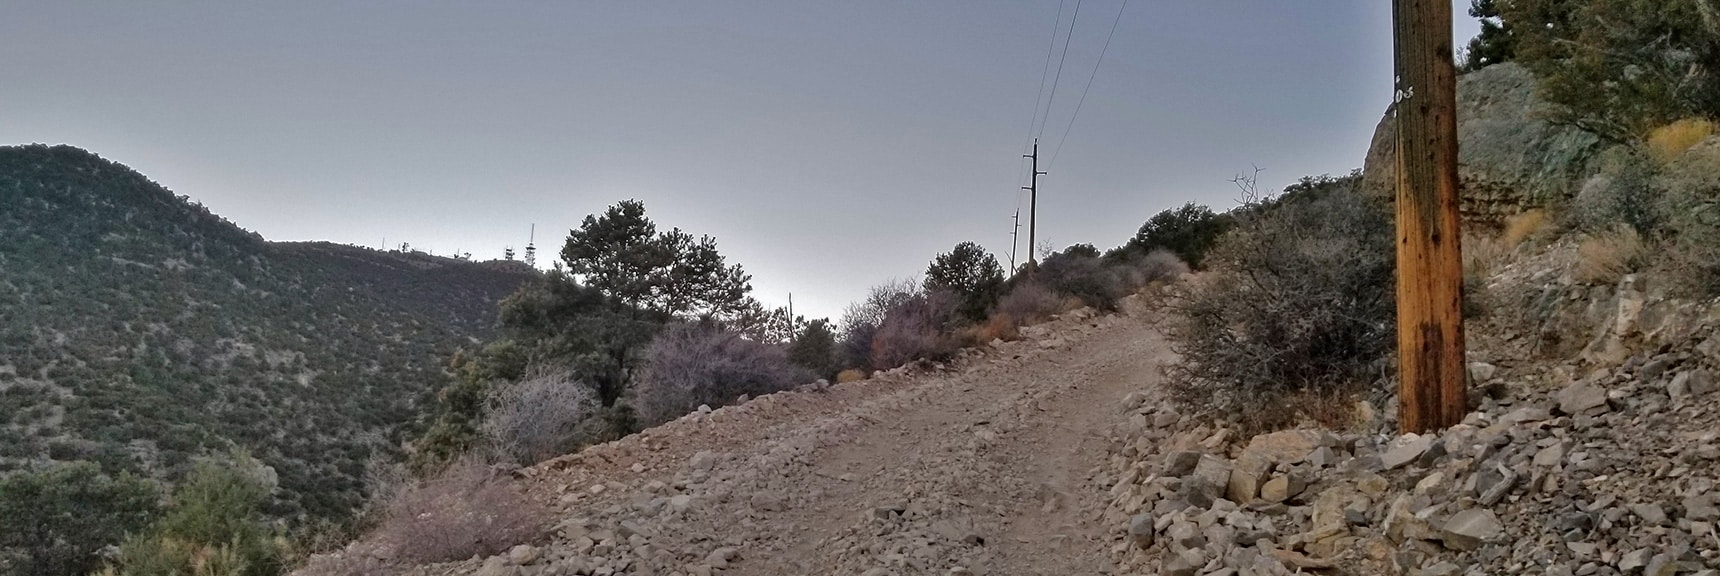 Approaching Angel Peak on Lucky Strike Road. Road Becomes a